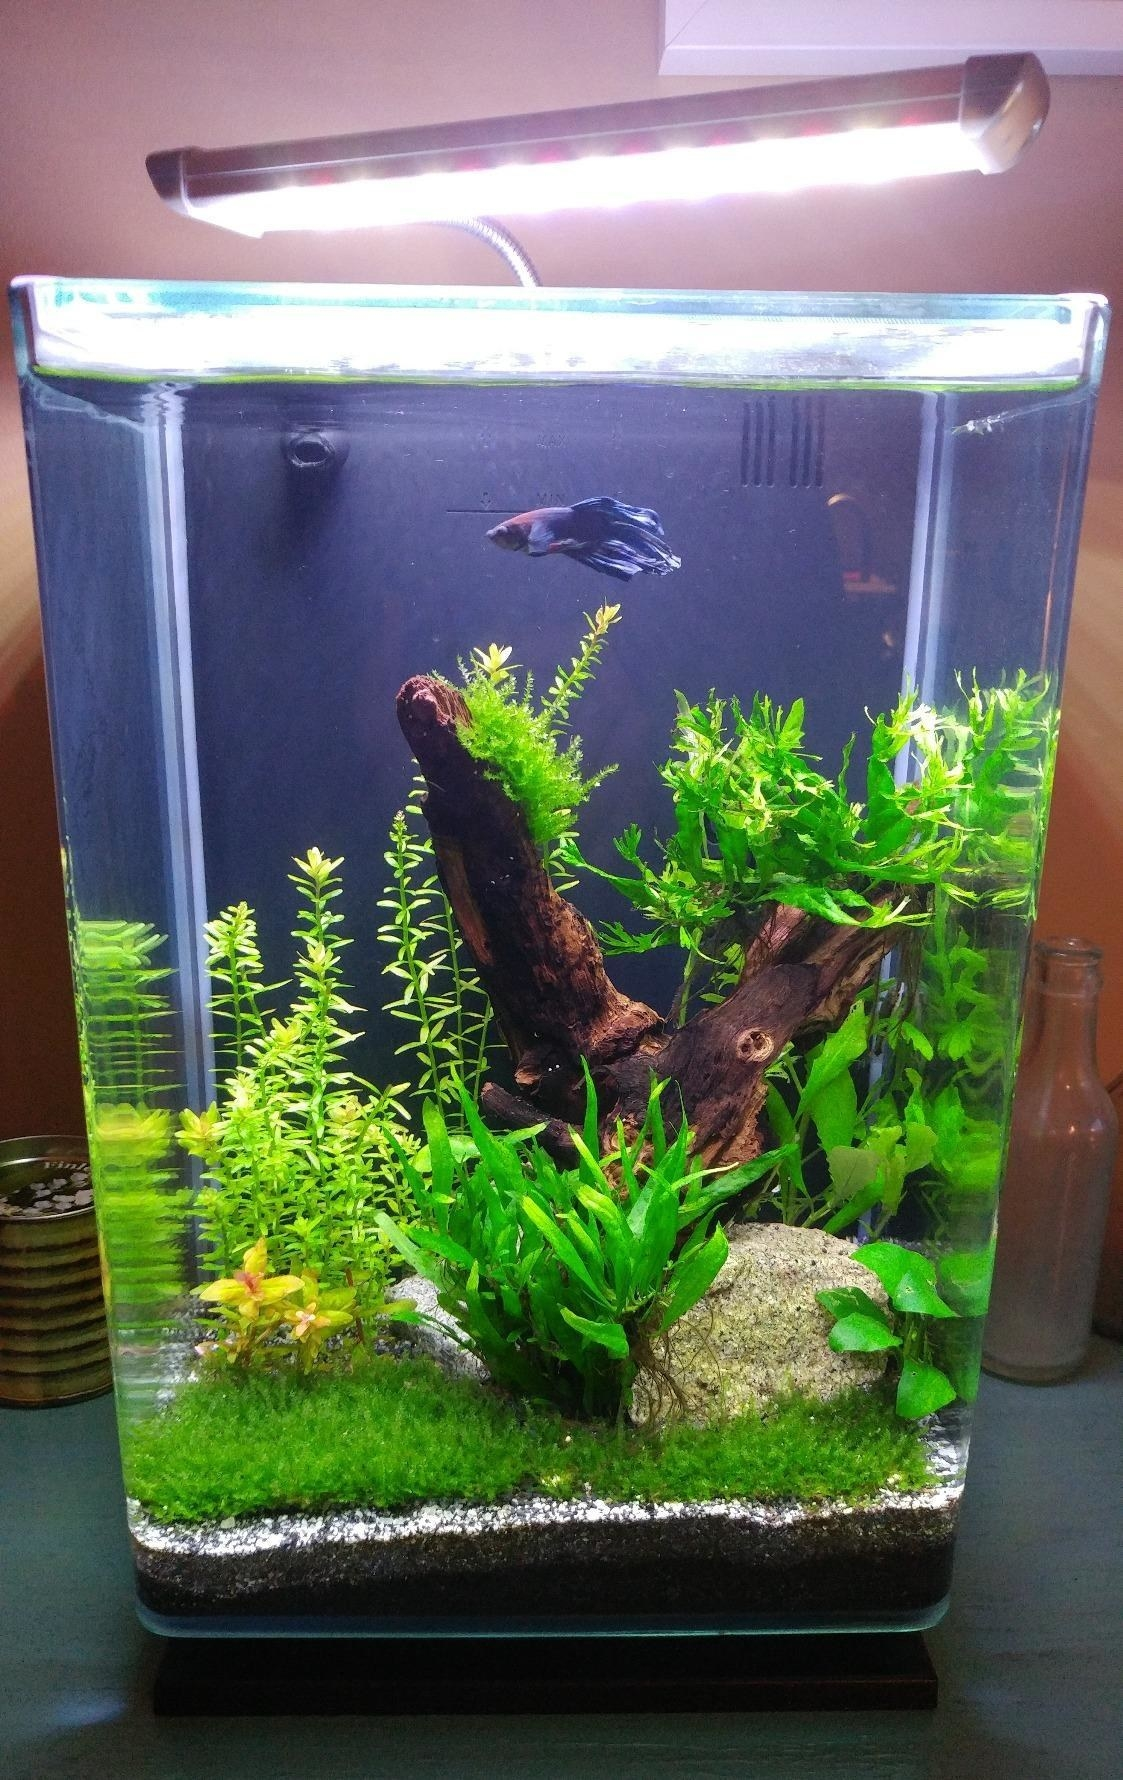 Reviewer photo of their tank